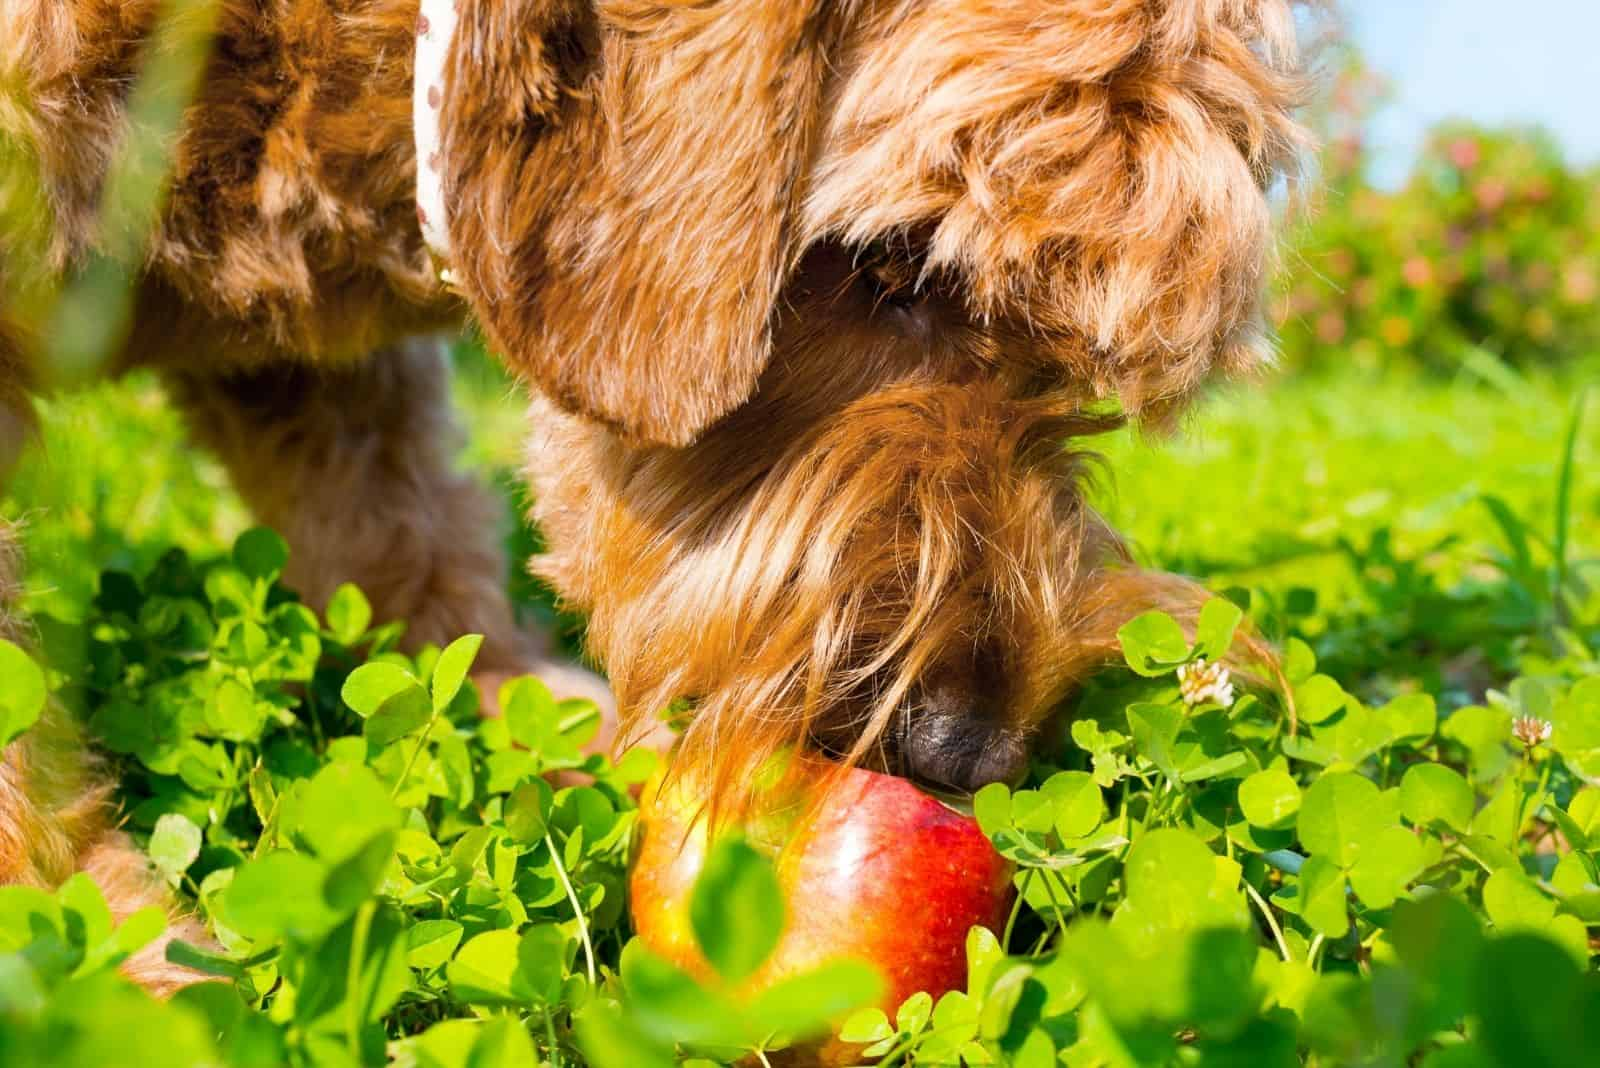 goldendoodle eating fruit outdoors in focus photography